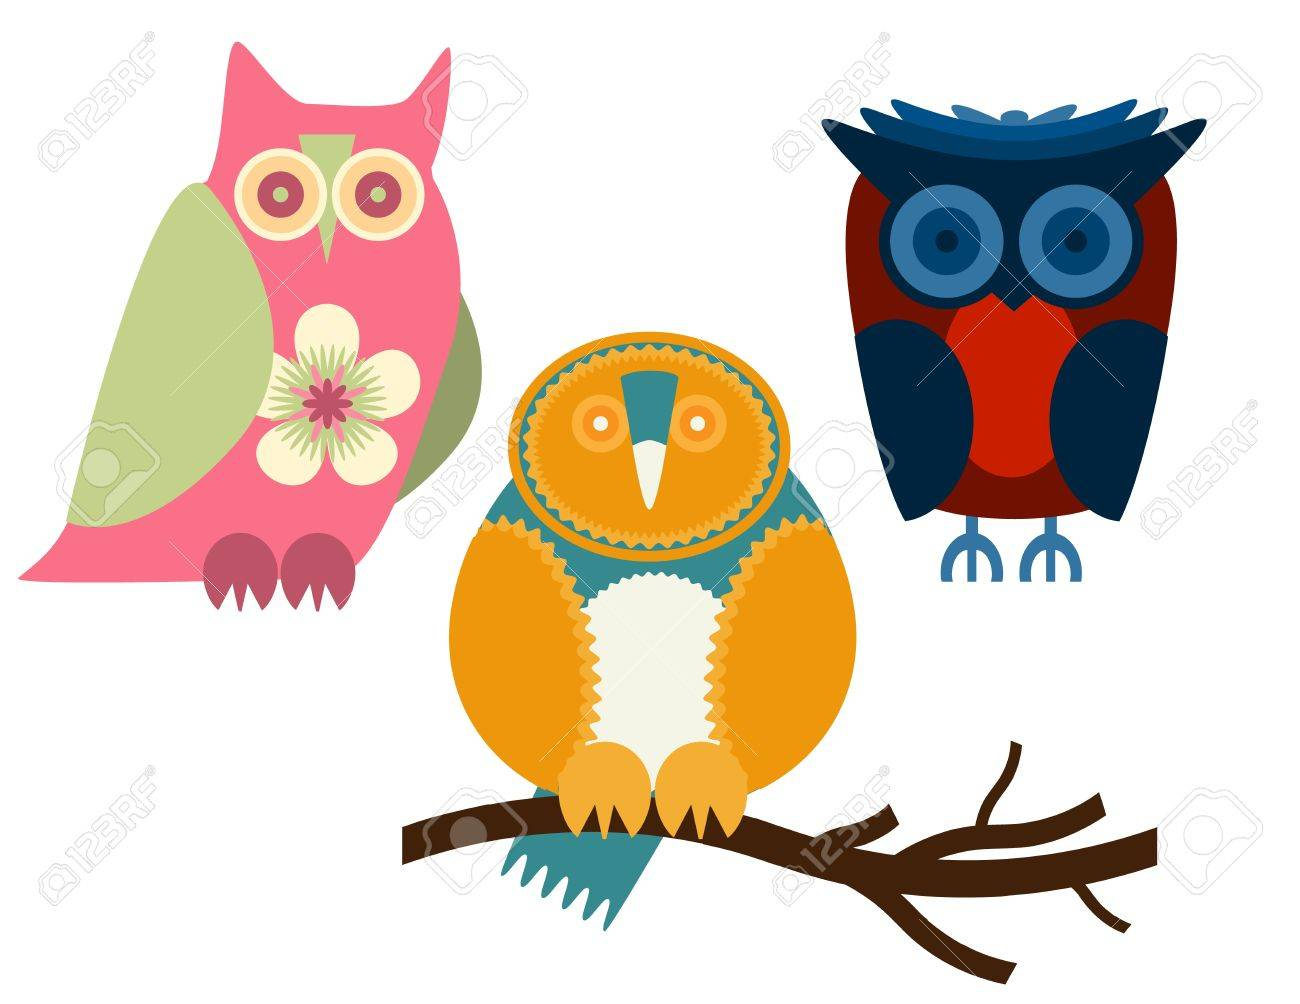 Owls - Set of three owls in different colors